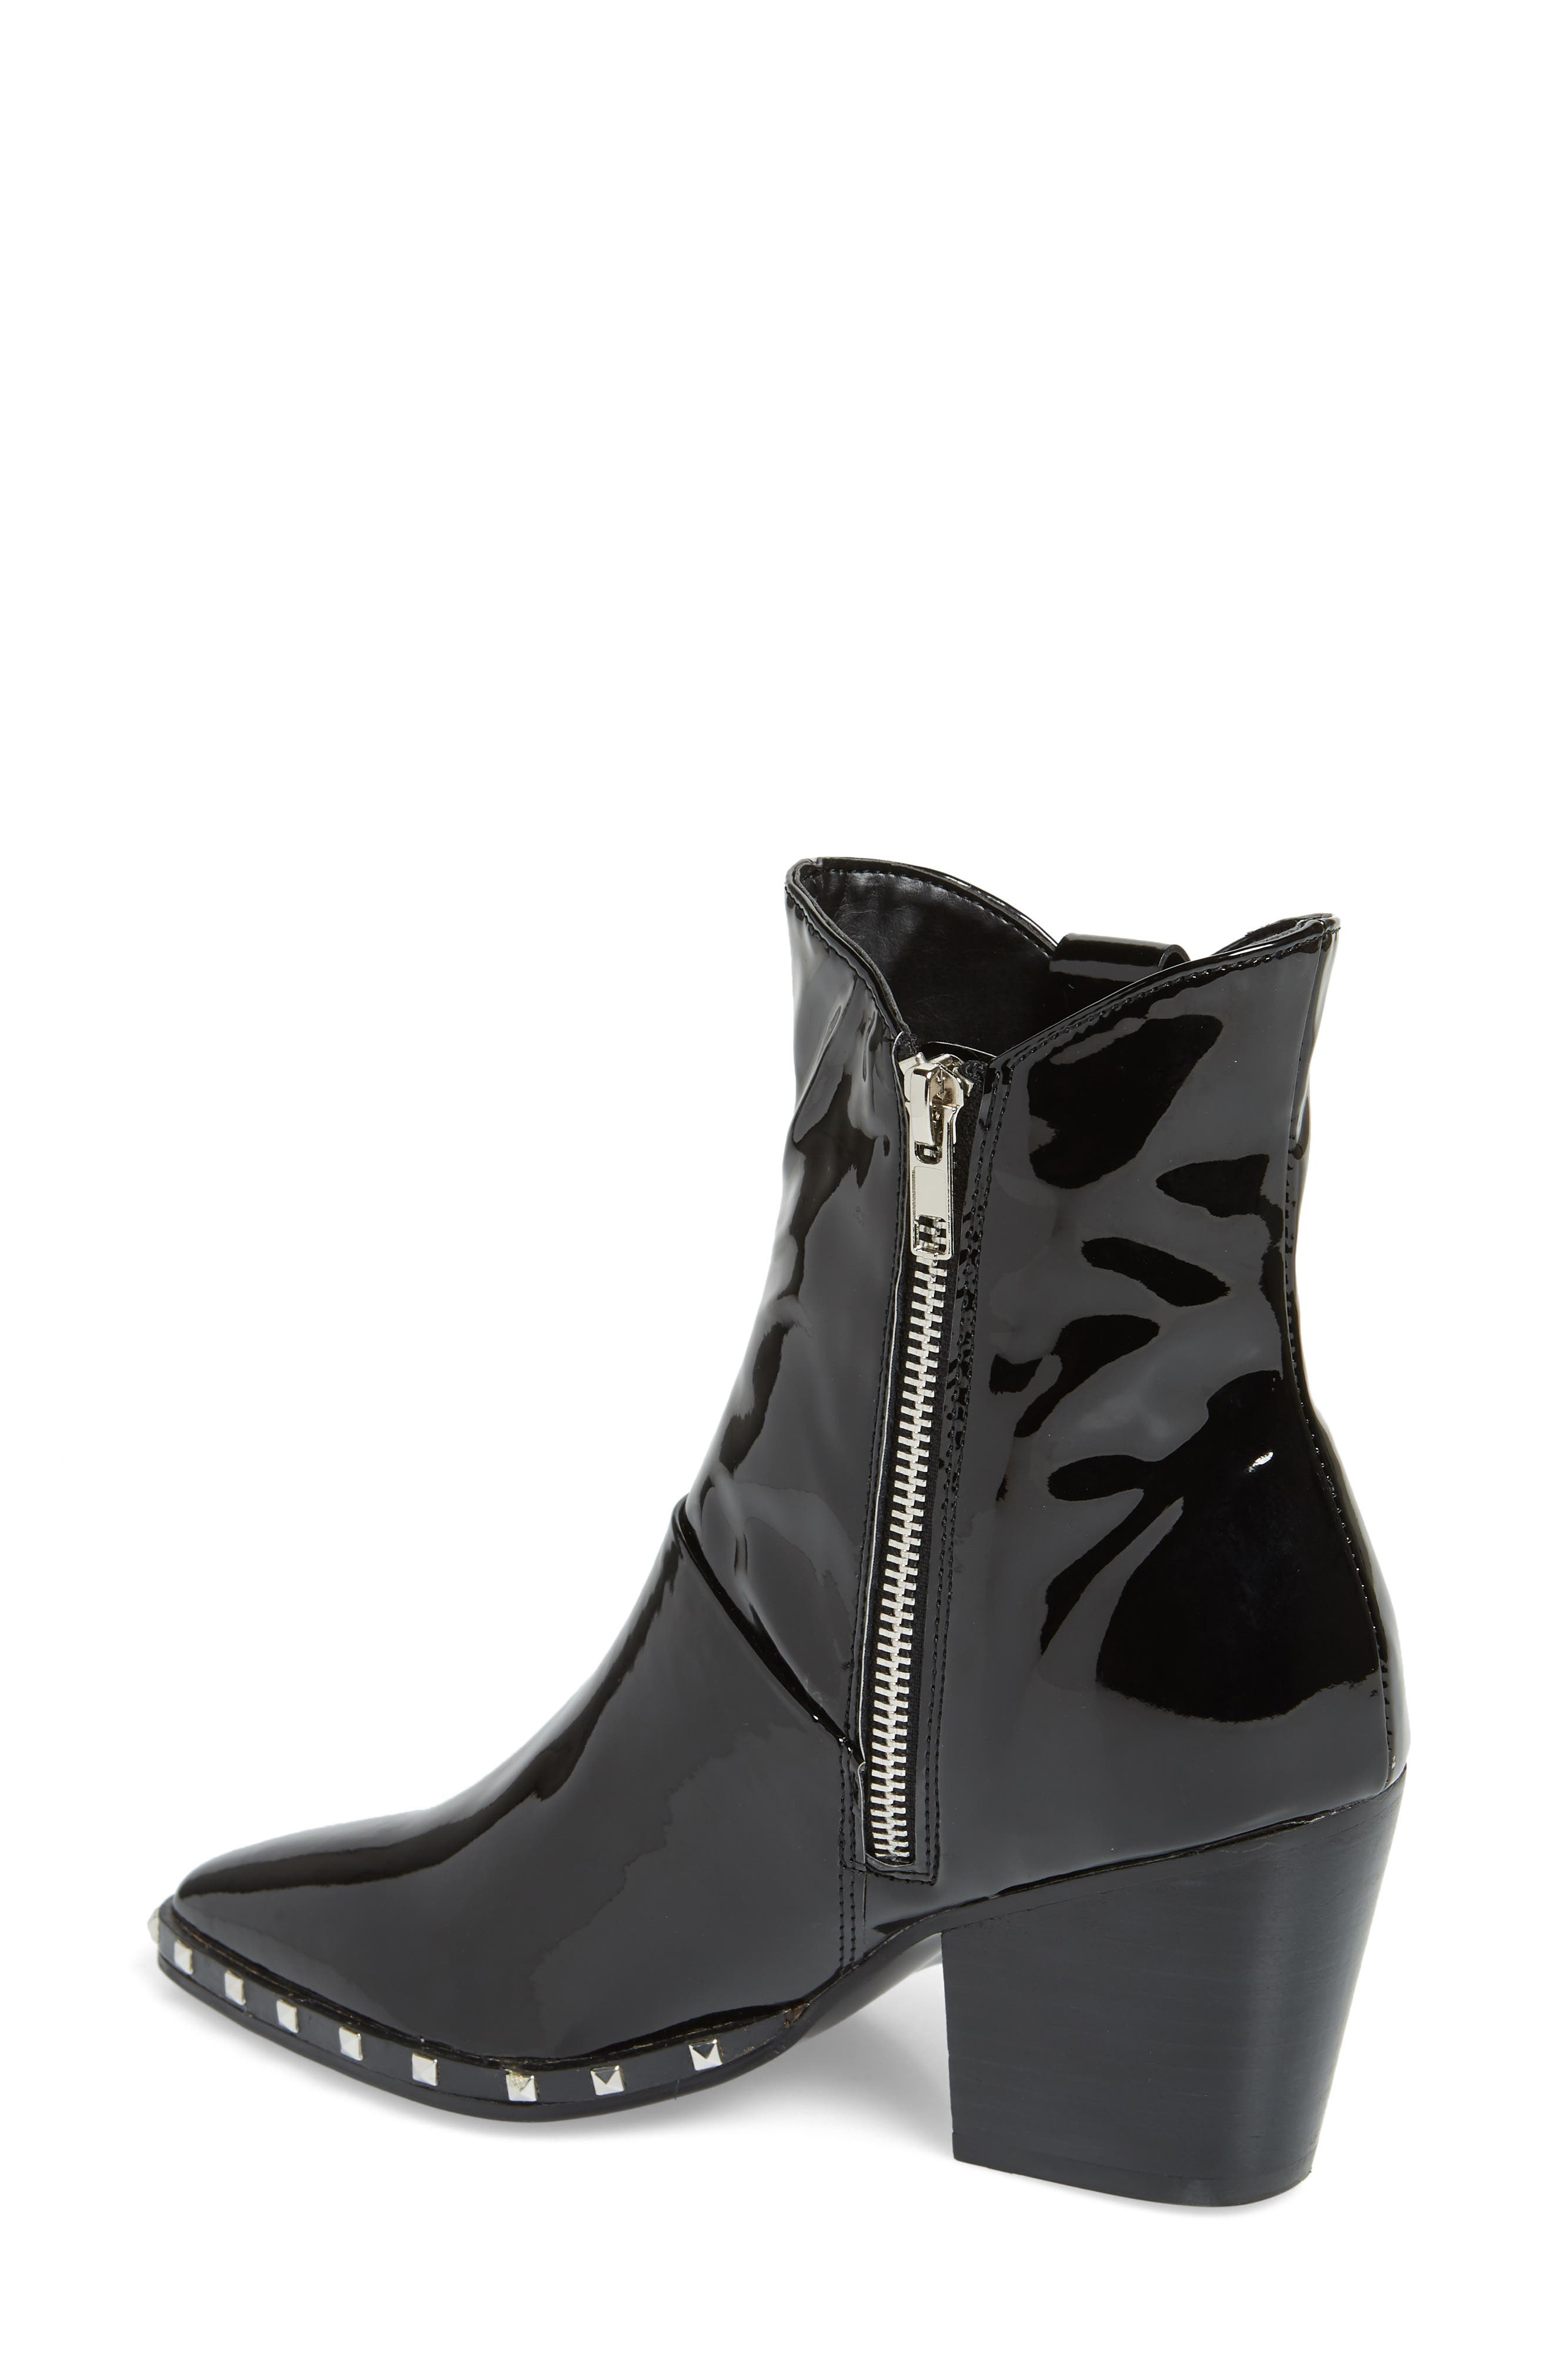 Haines Studded Bootie,                             Alternate thumbnail 2, color,                             MIDNIGHT PATENT LEATHER